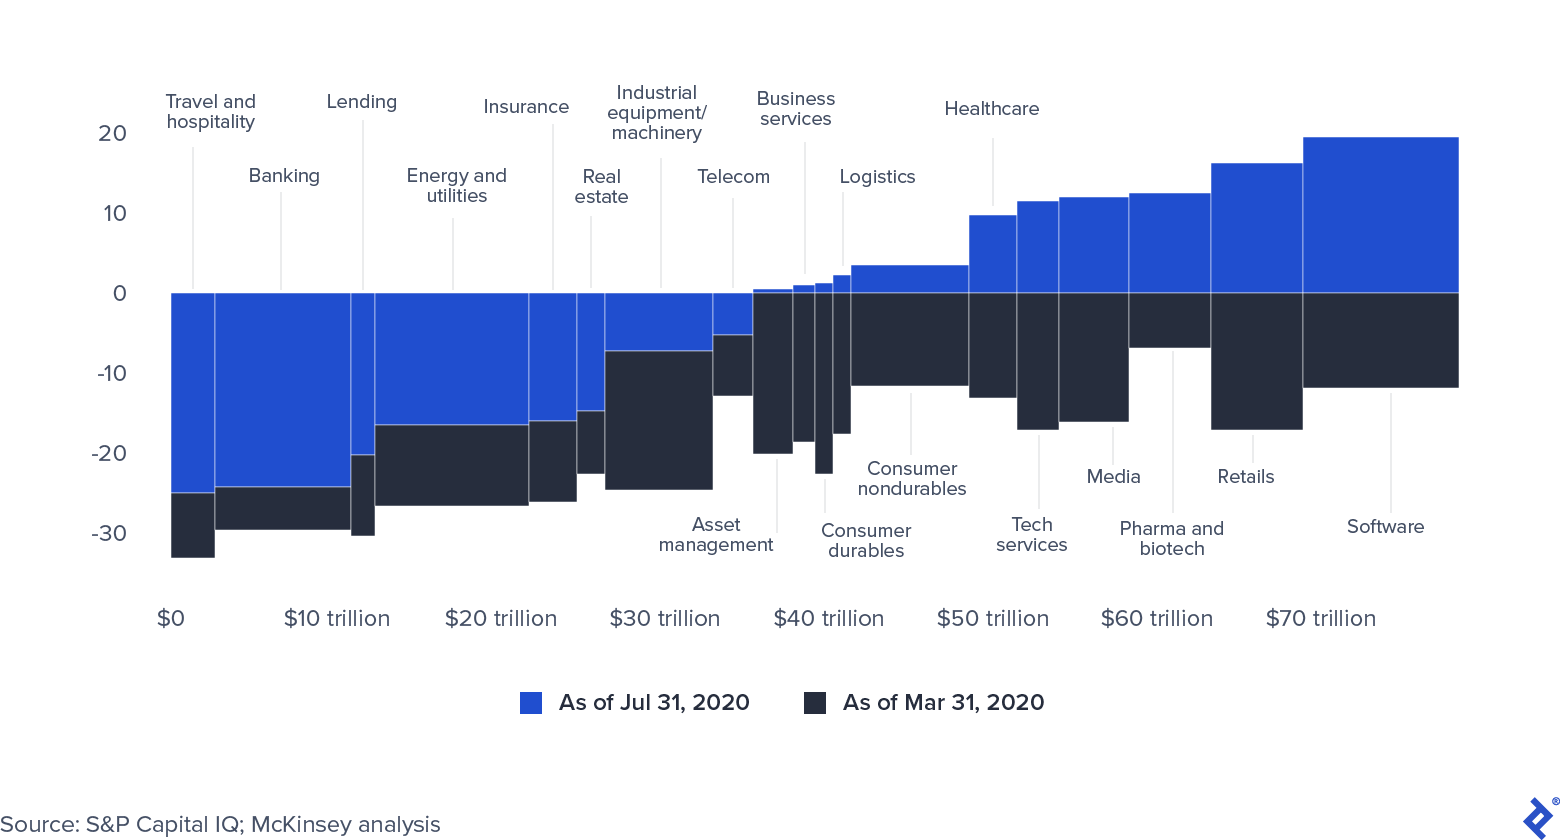 Global Market Capitalization by Sector